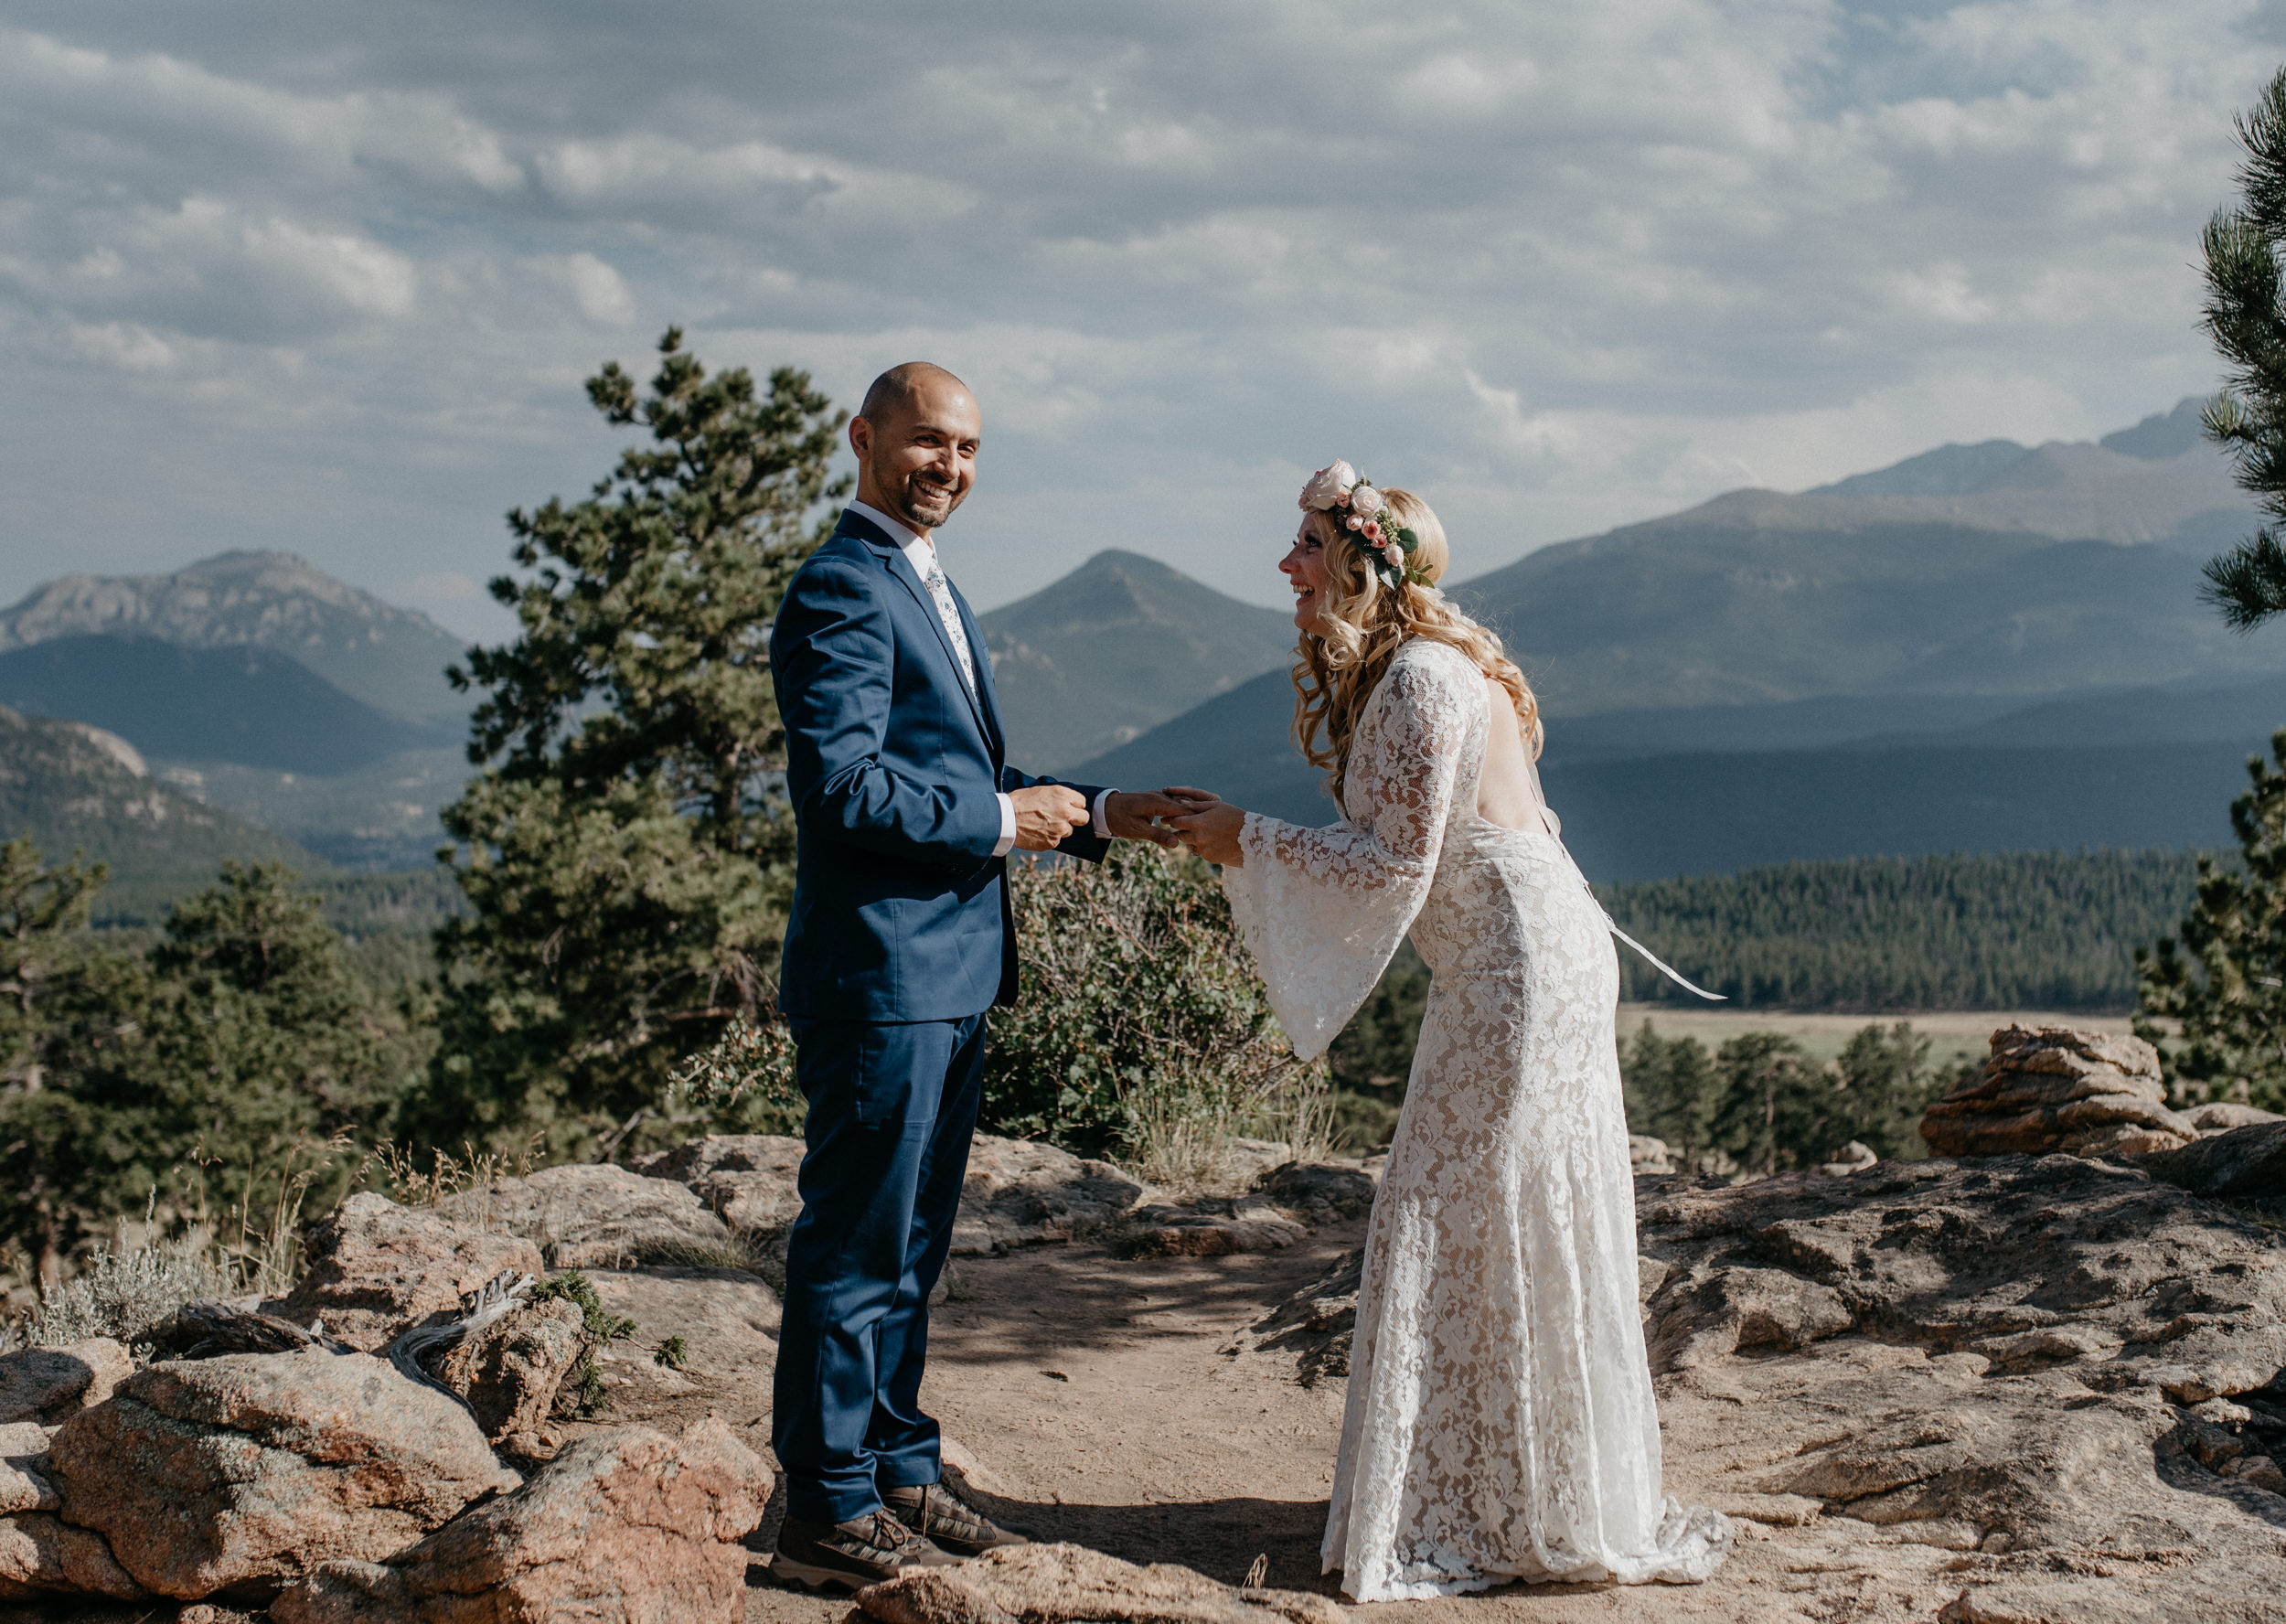 Colorado elopement photography. 3M curve elopement in Rocky Mountain National Park.